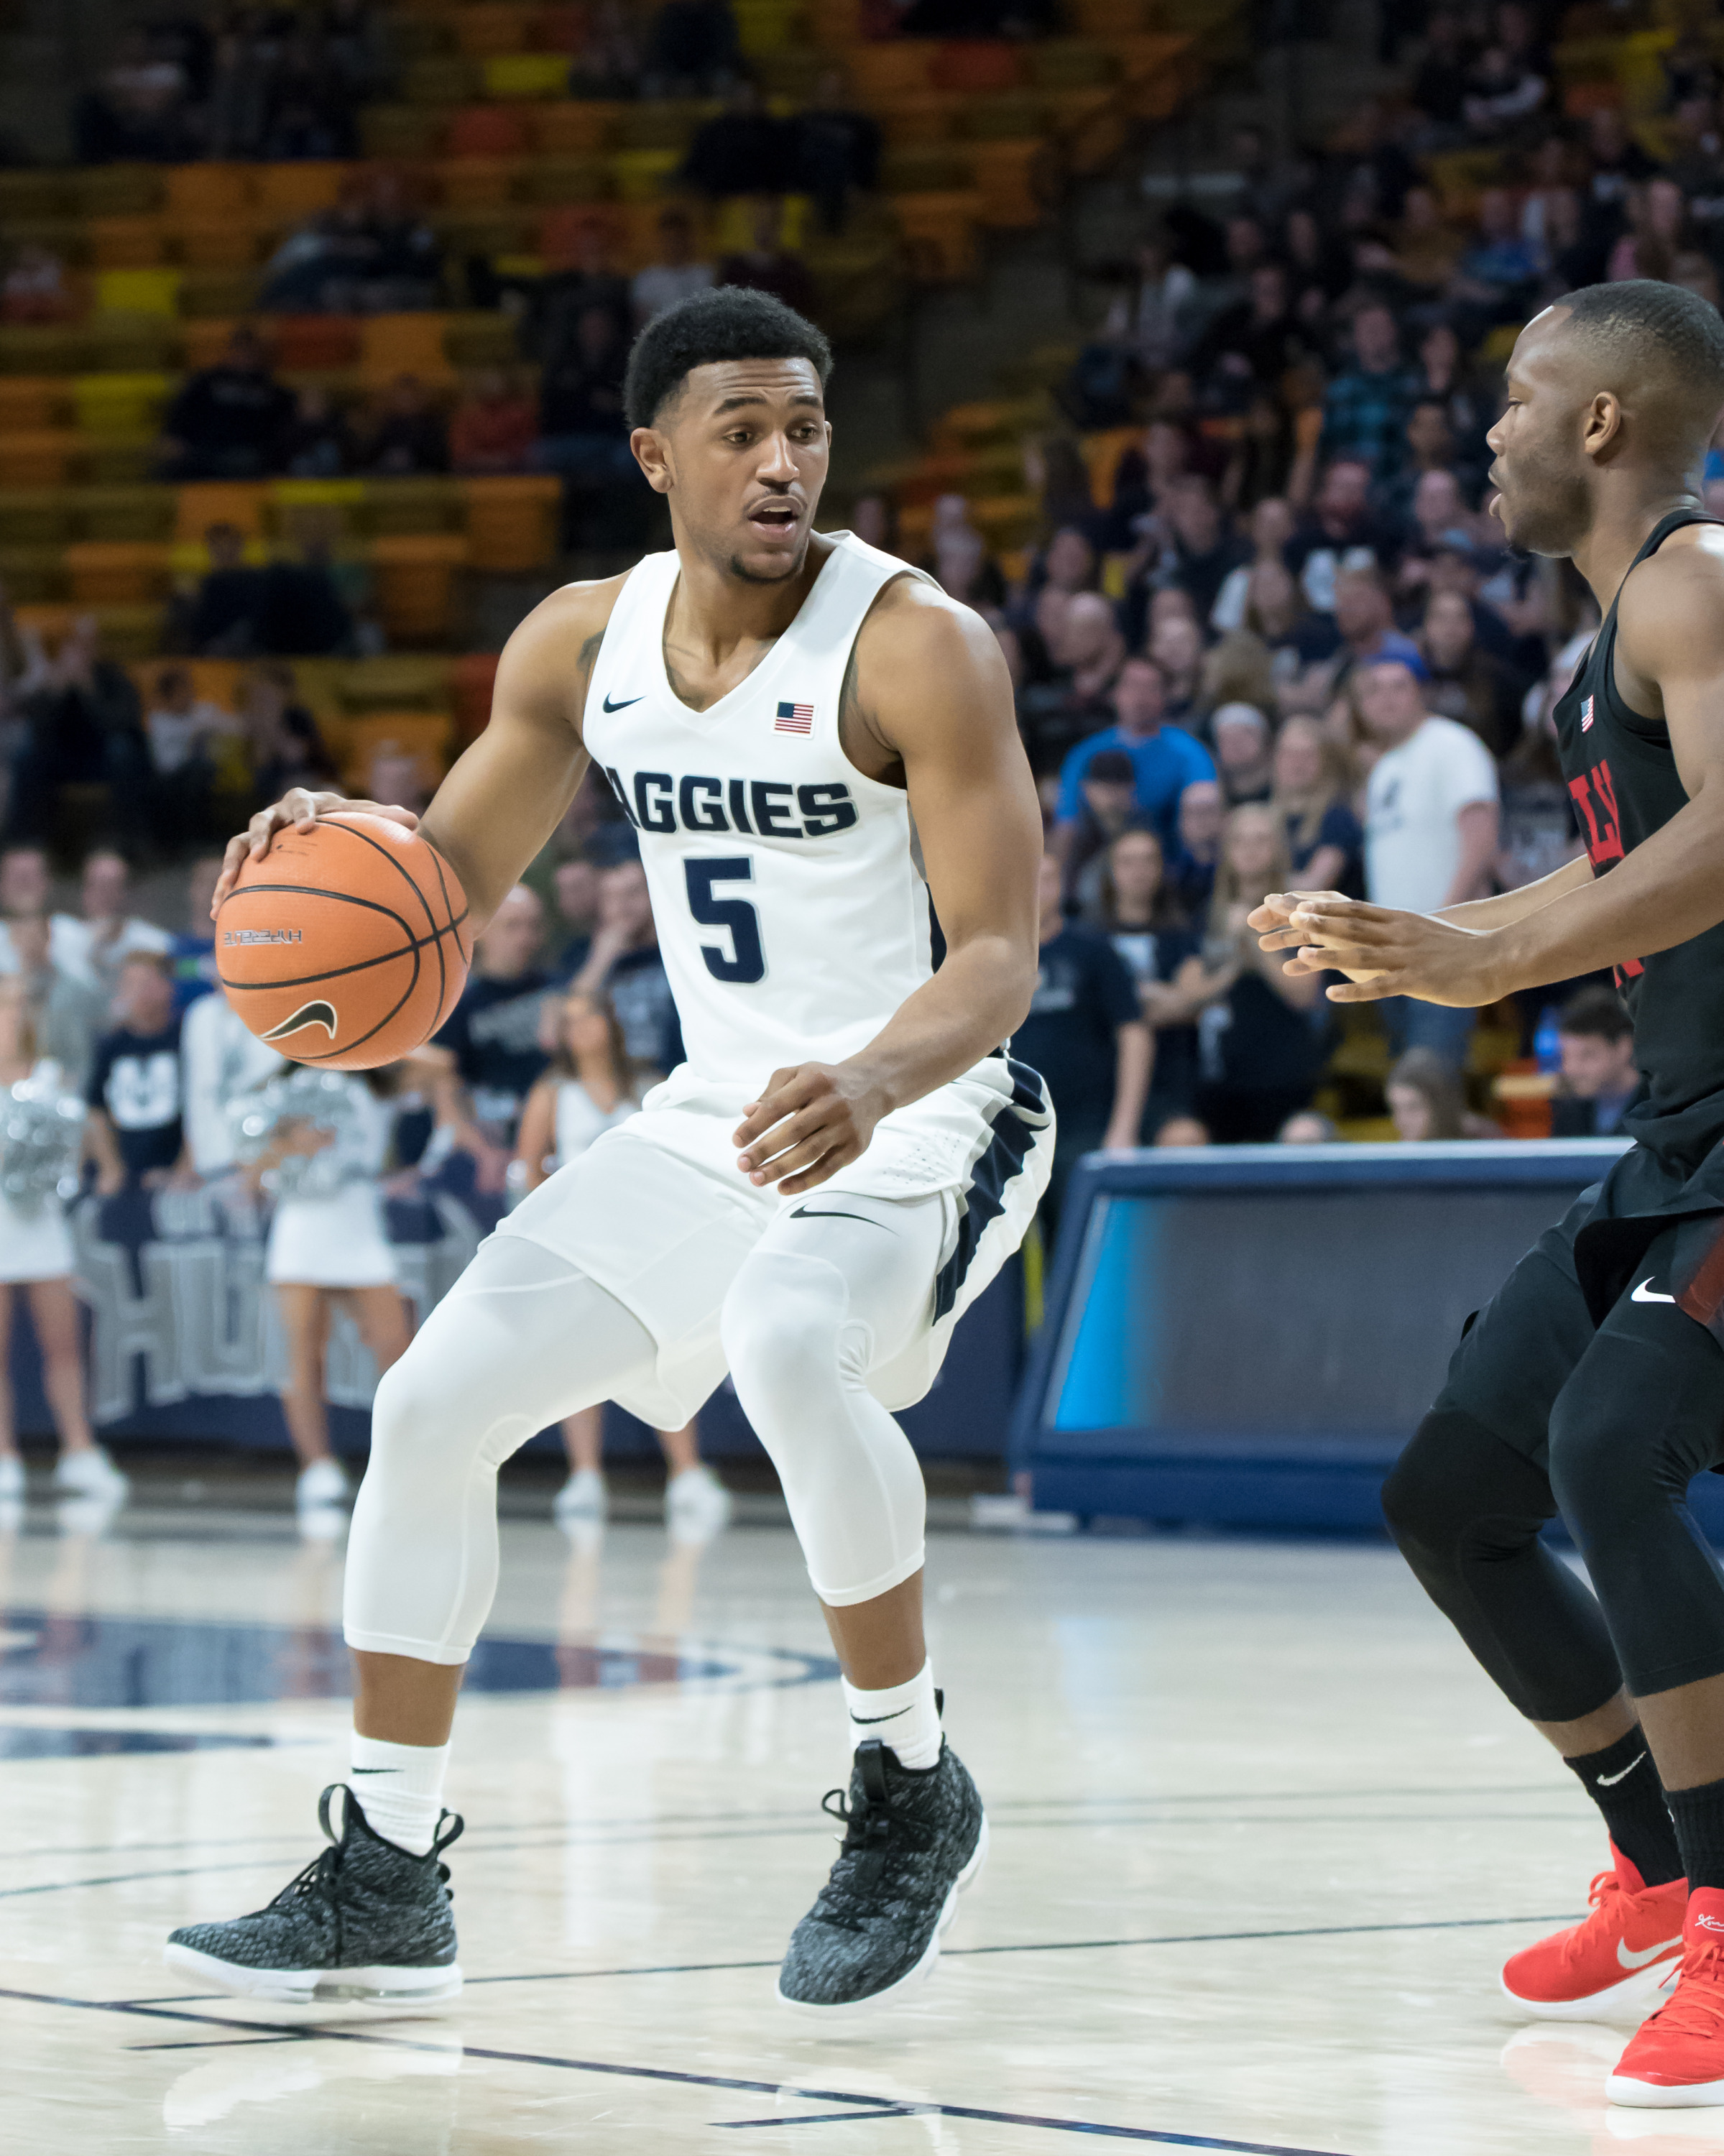 utah state men's basketball victorious in first round of mw